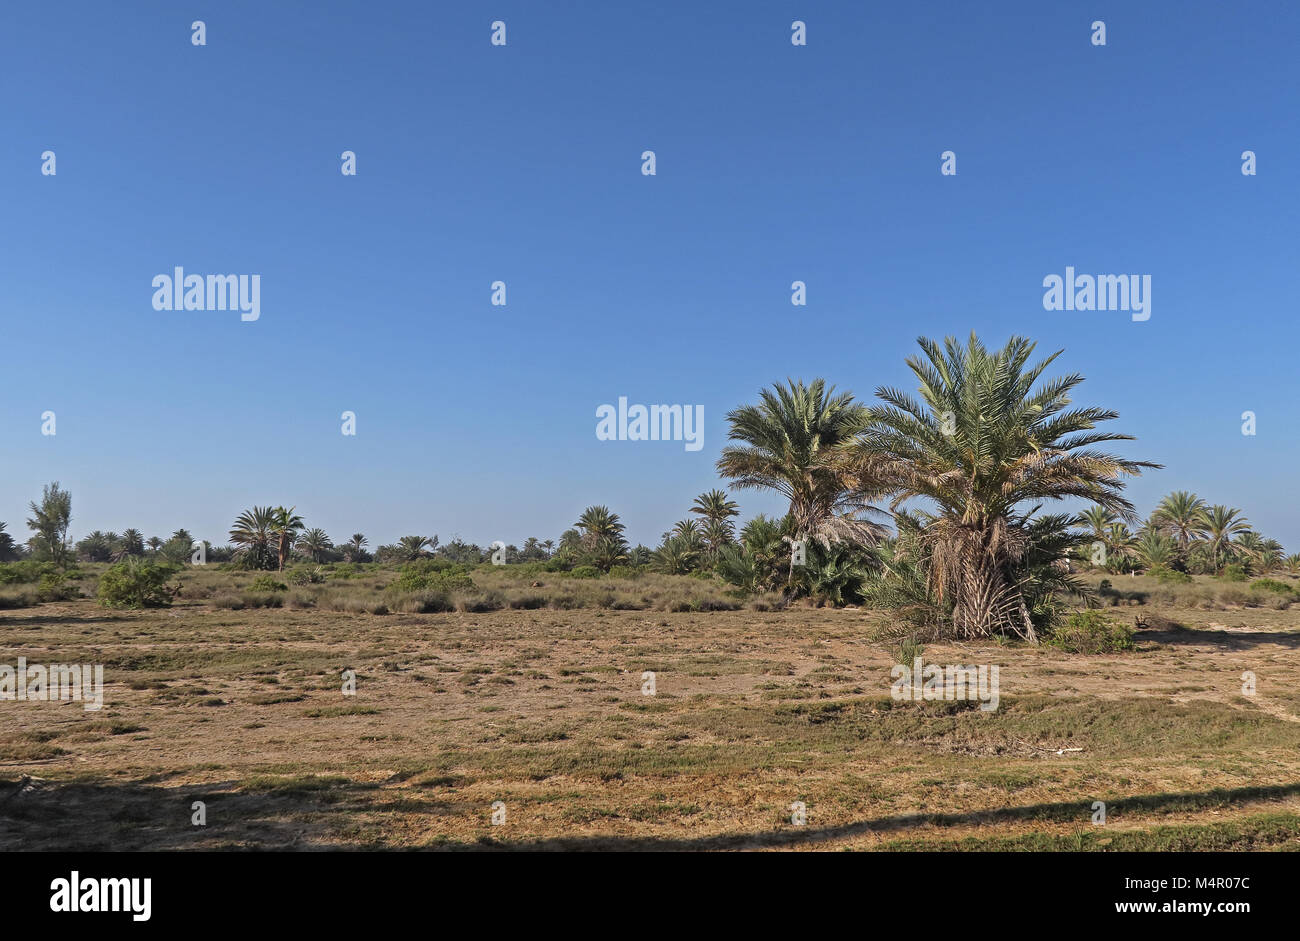 palm trees growing on dry plain  Tulear, Madagascar              November - Stock Image